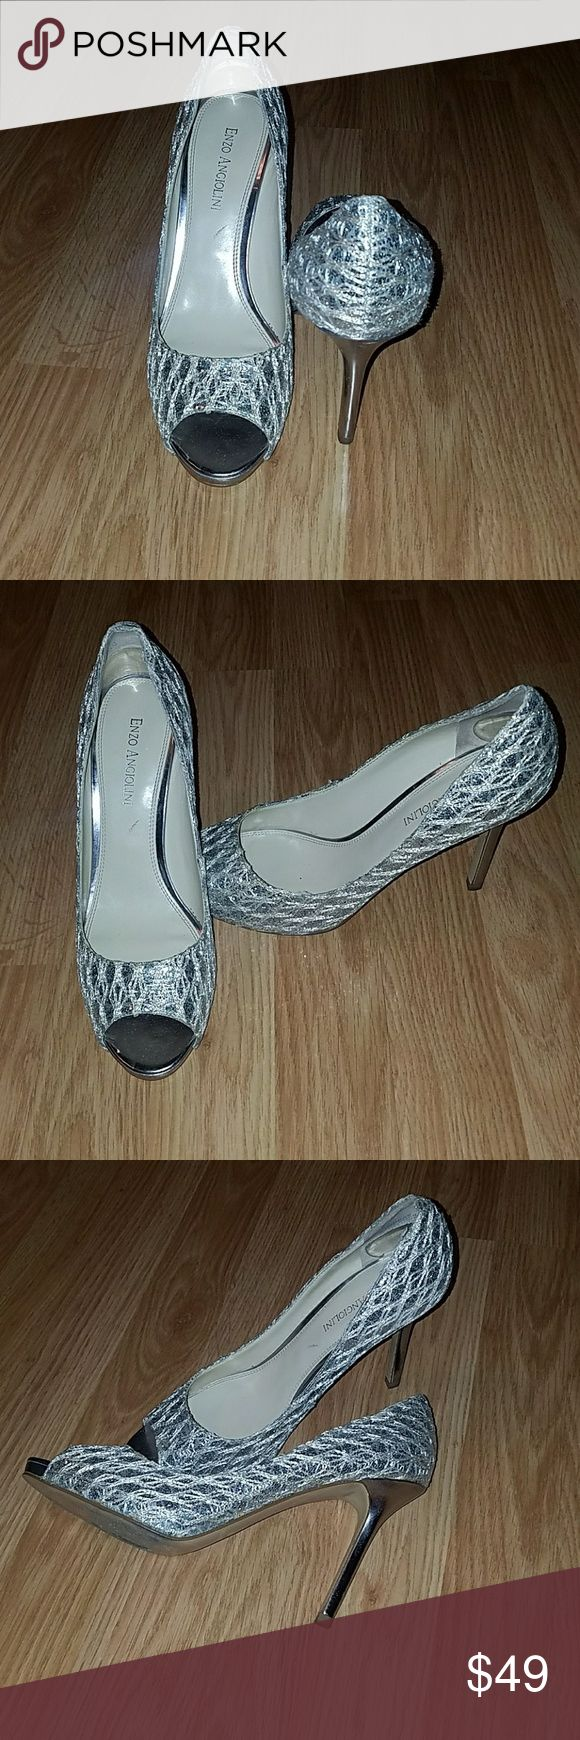 Enzo Angiolini Silver Peep Toe Heels Beautiful, silver peep toes. 3.5 in. Heel. Wore these one time at a wedding. You can see wear on the soles of the shoes but no other signs of wear on the actual shoe or heel (see pics).  Size down a 1/2 size.  I usually wear 7.5 or 8 but definitely needes the 7.5 in this shoe. Enzo Angiolini Shoes Heels